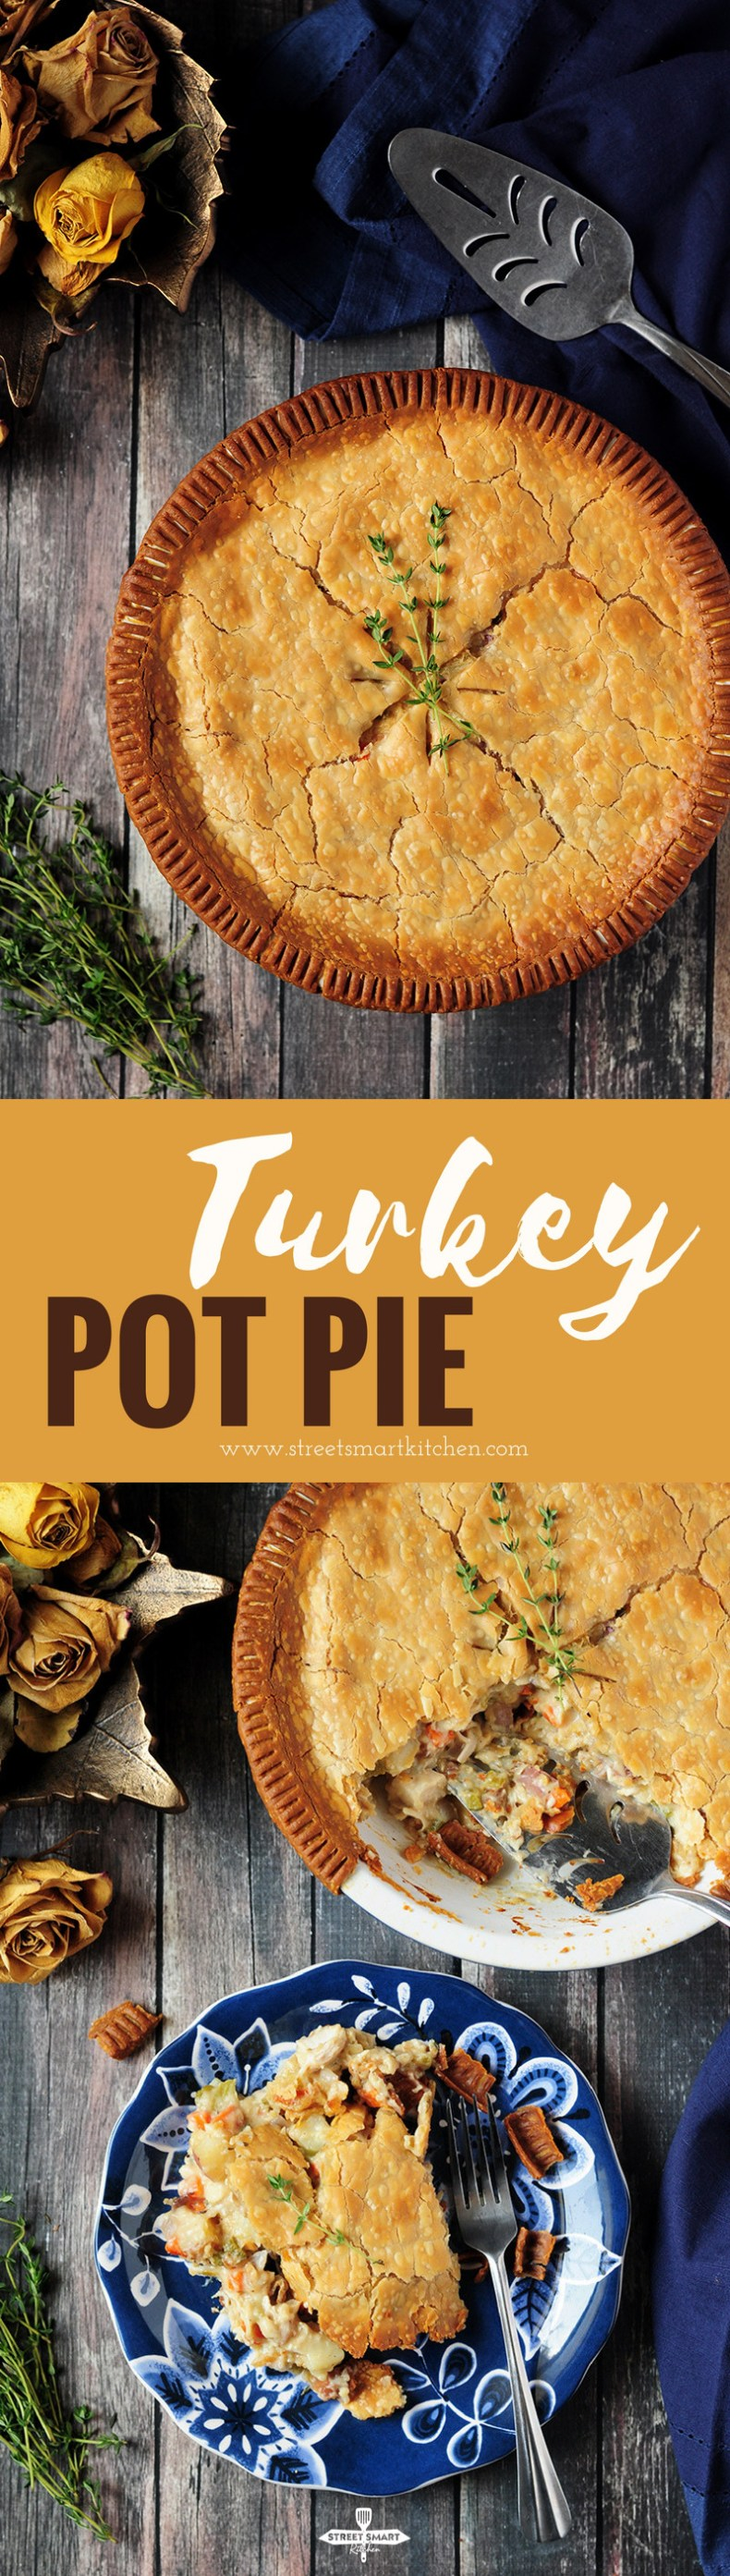 Made with simple ingredients, this turkey pot pie is a hearty dinner for your whole family. Prepare the filling the night before for an easy meal.